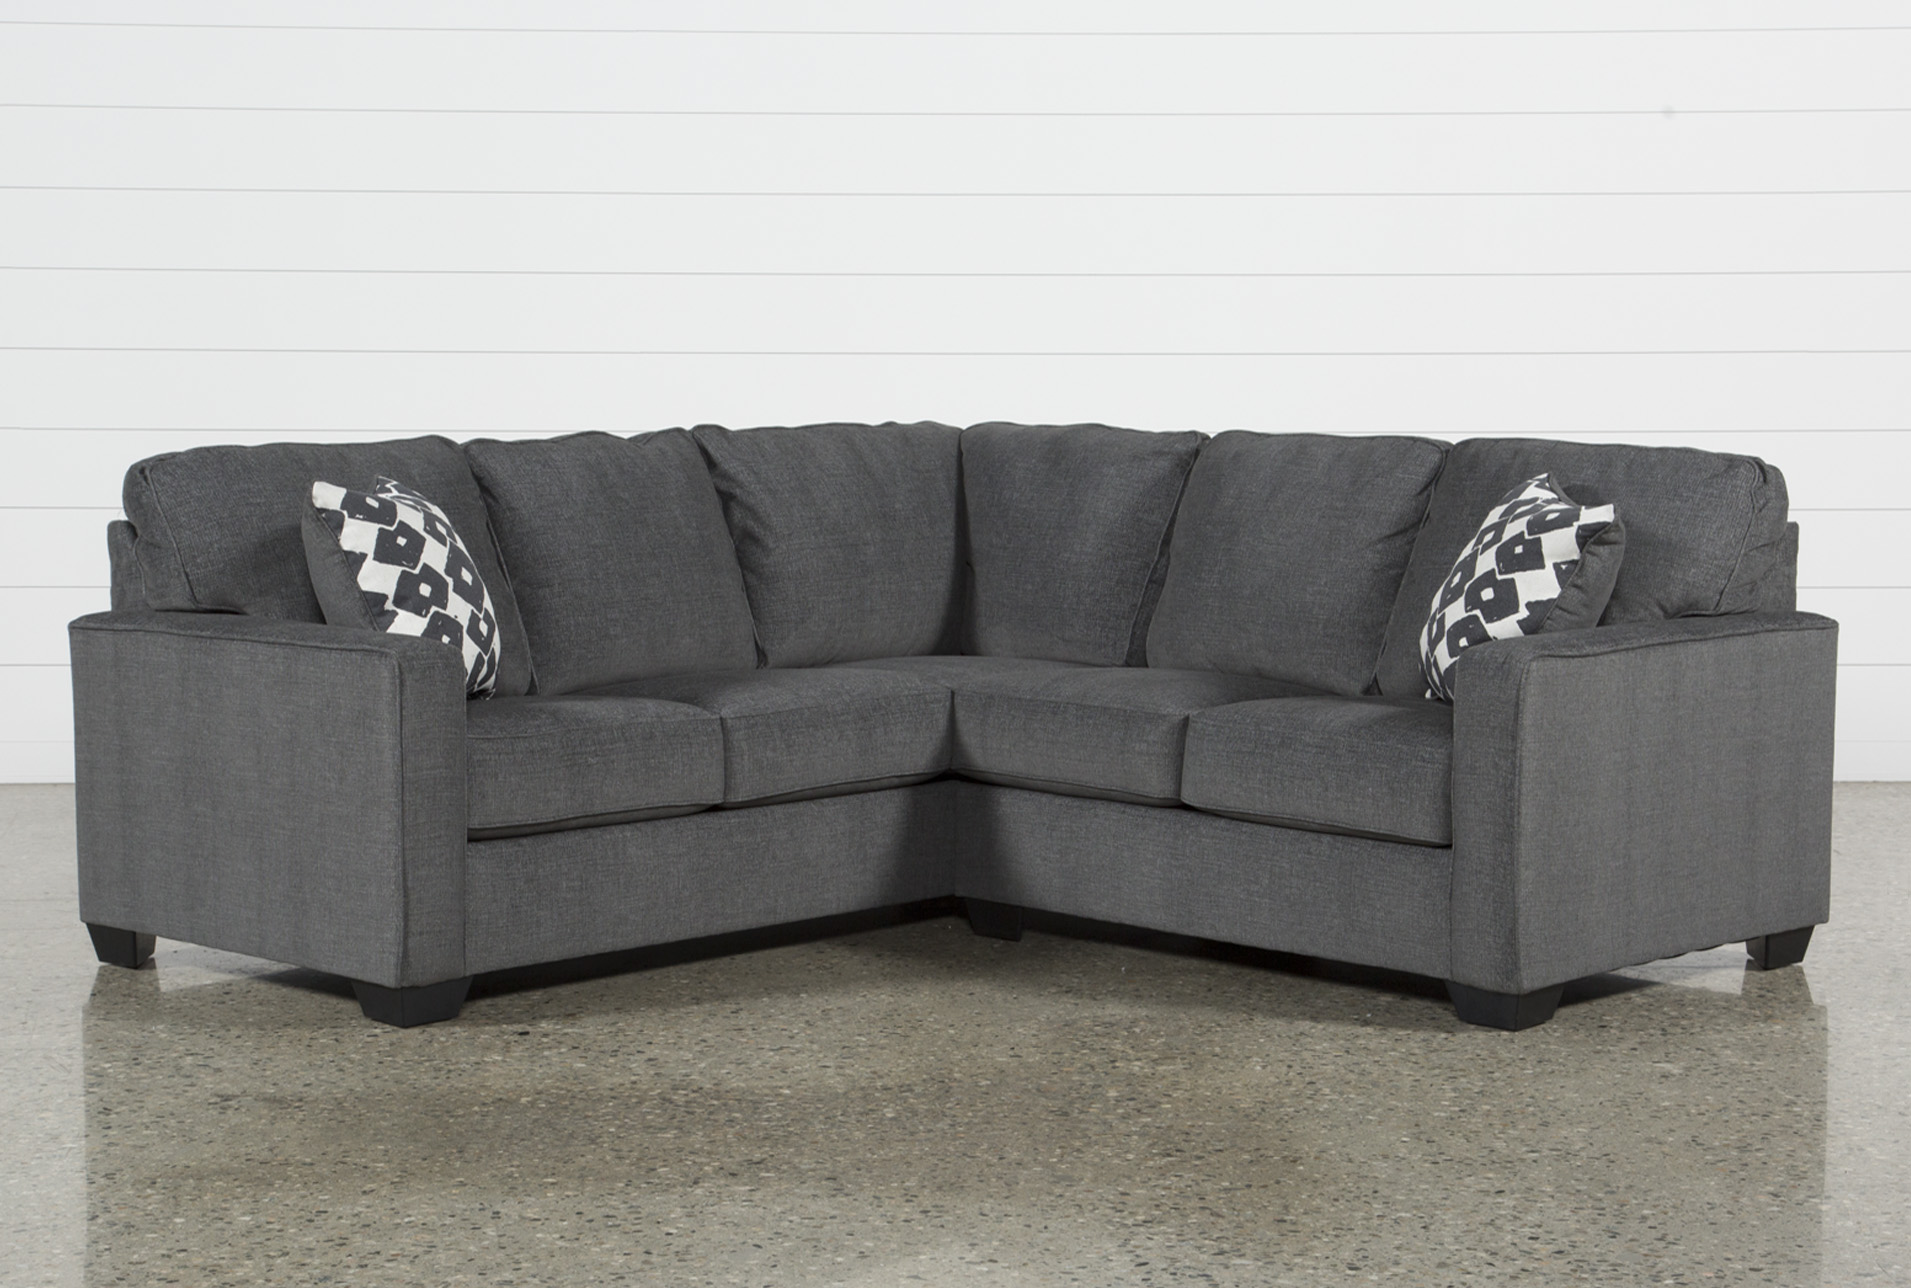 Turdur 2 Piece Sectional W/Raf Loveseat (Qty: 1) has been successfully  added to your Cart.